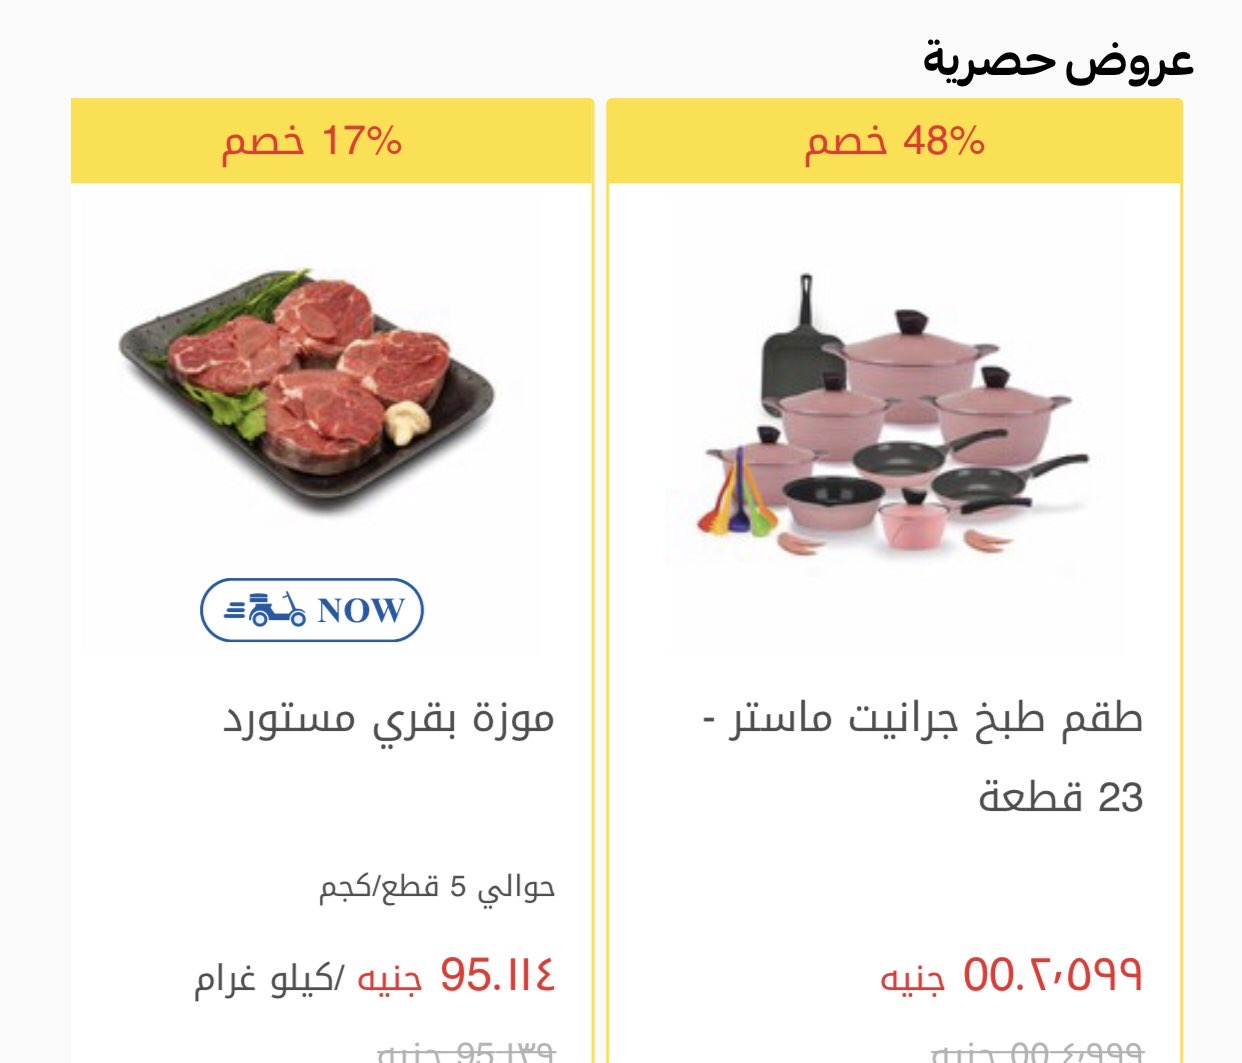 New Carrefour Egypt introduces 50 EGP discount codes on your first order. 16